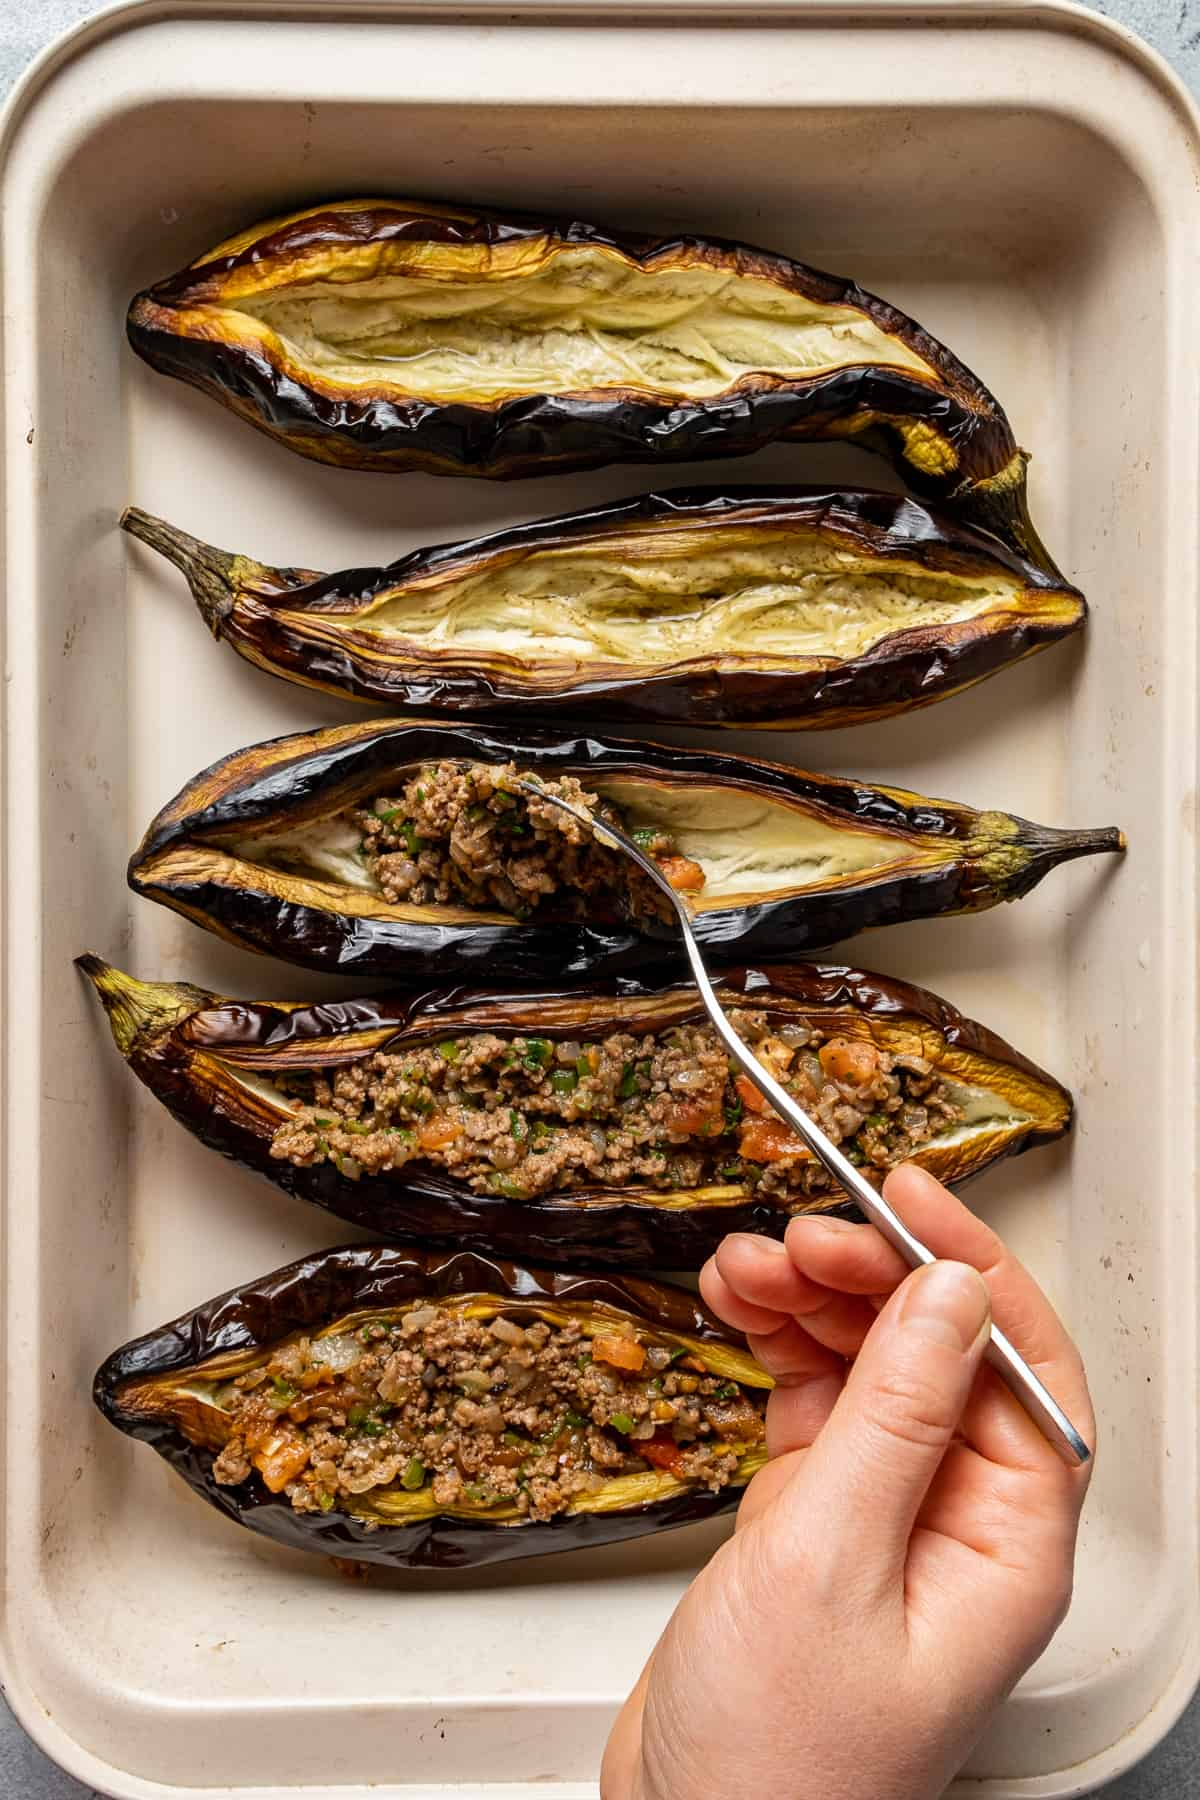 A hand stuffing the roasted whole eggplants with ground beef filling with a spoon.